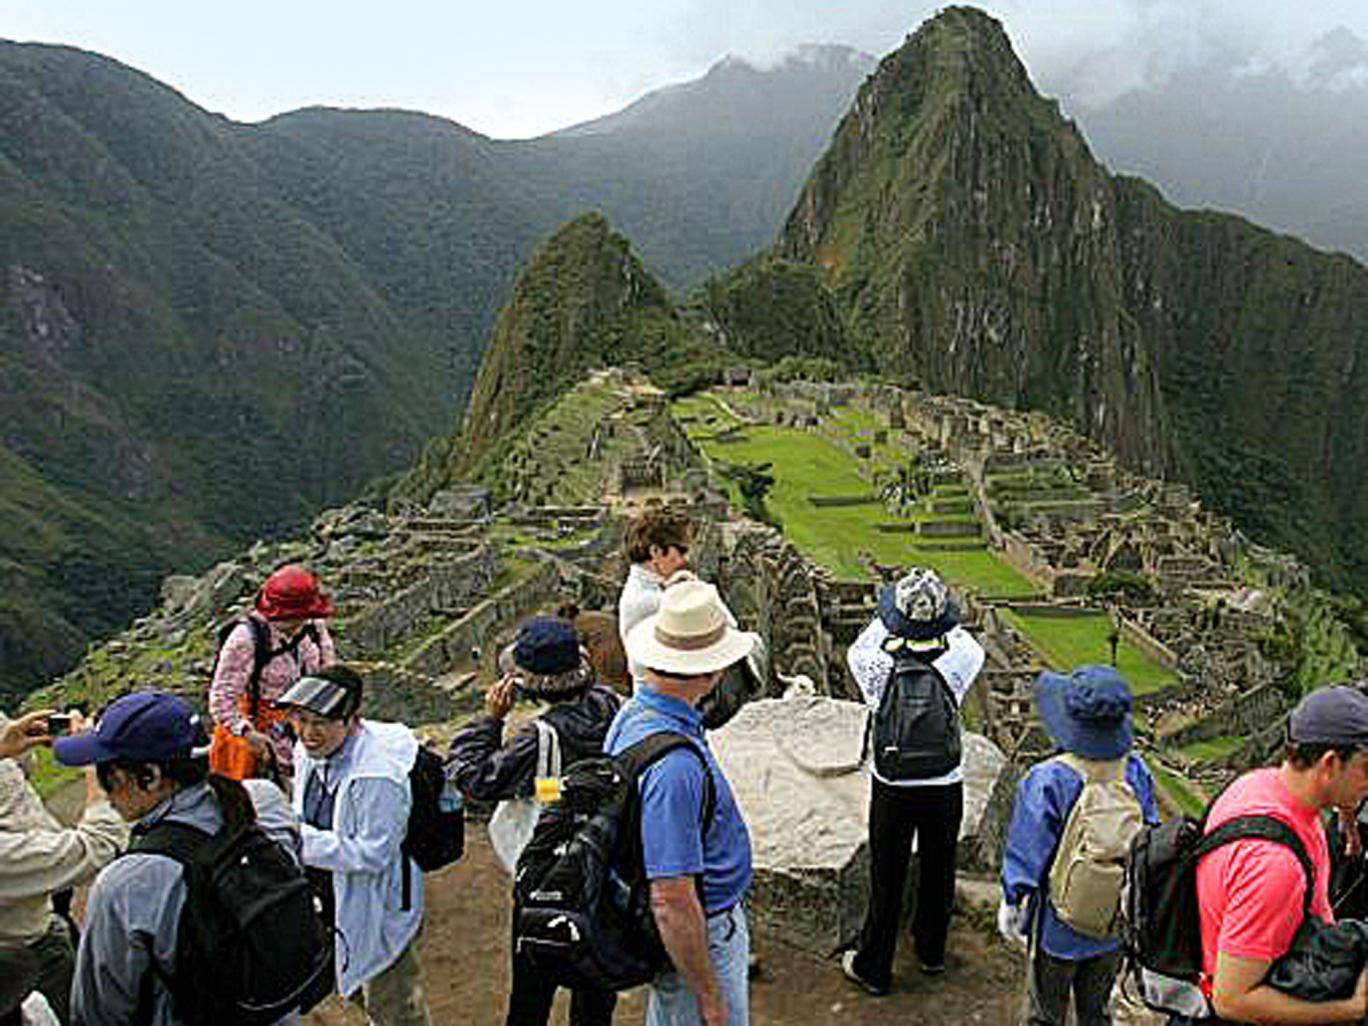 Peak season: the trail to Machu Picchu can be crowded with mobile-wielding tourists